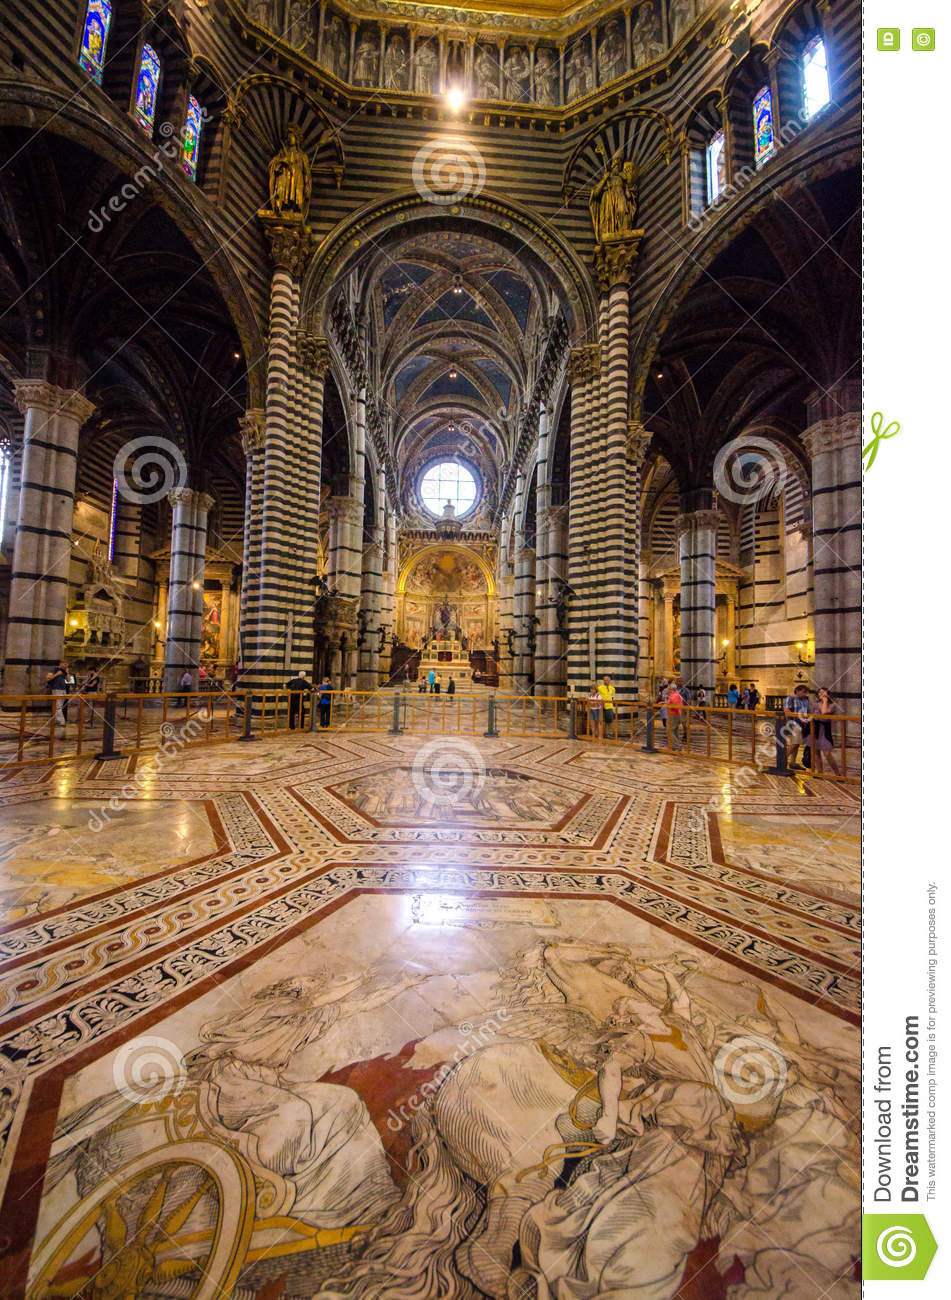 Interior of Siena Cathedral in Tuscany, Italy, August 2016